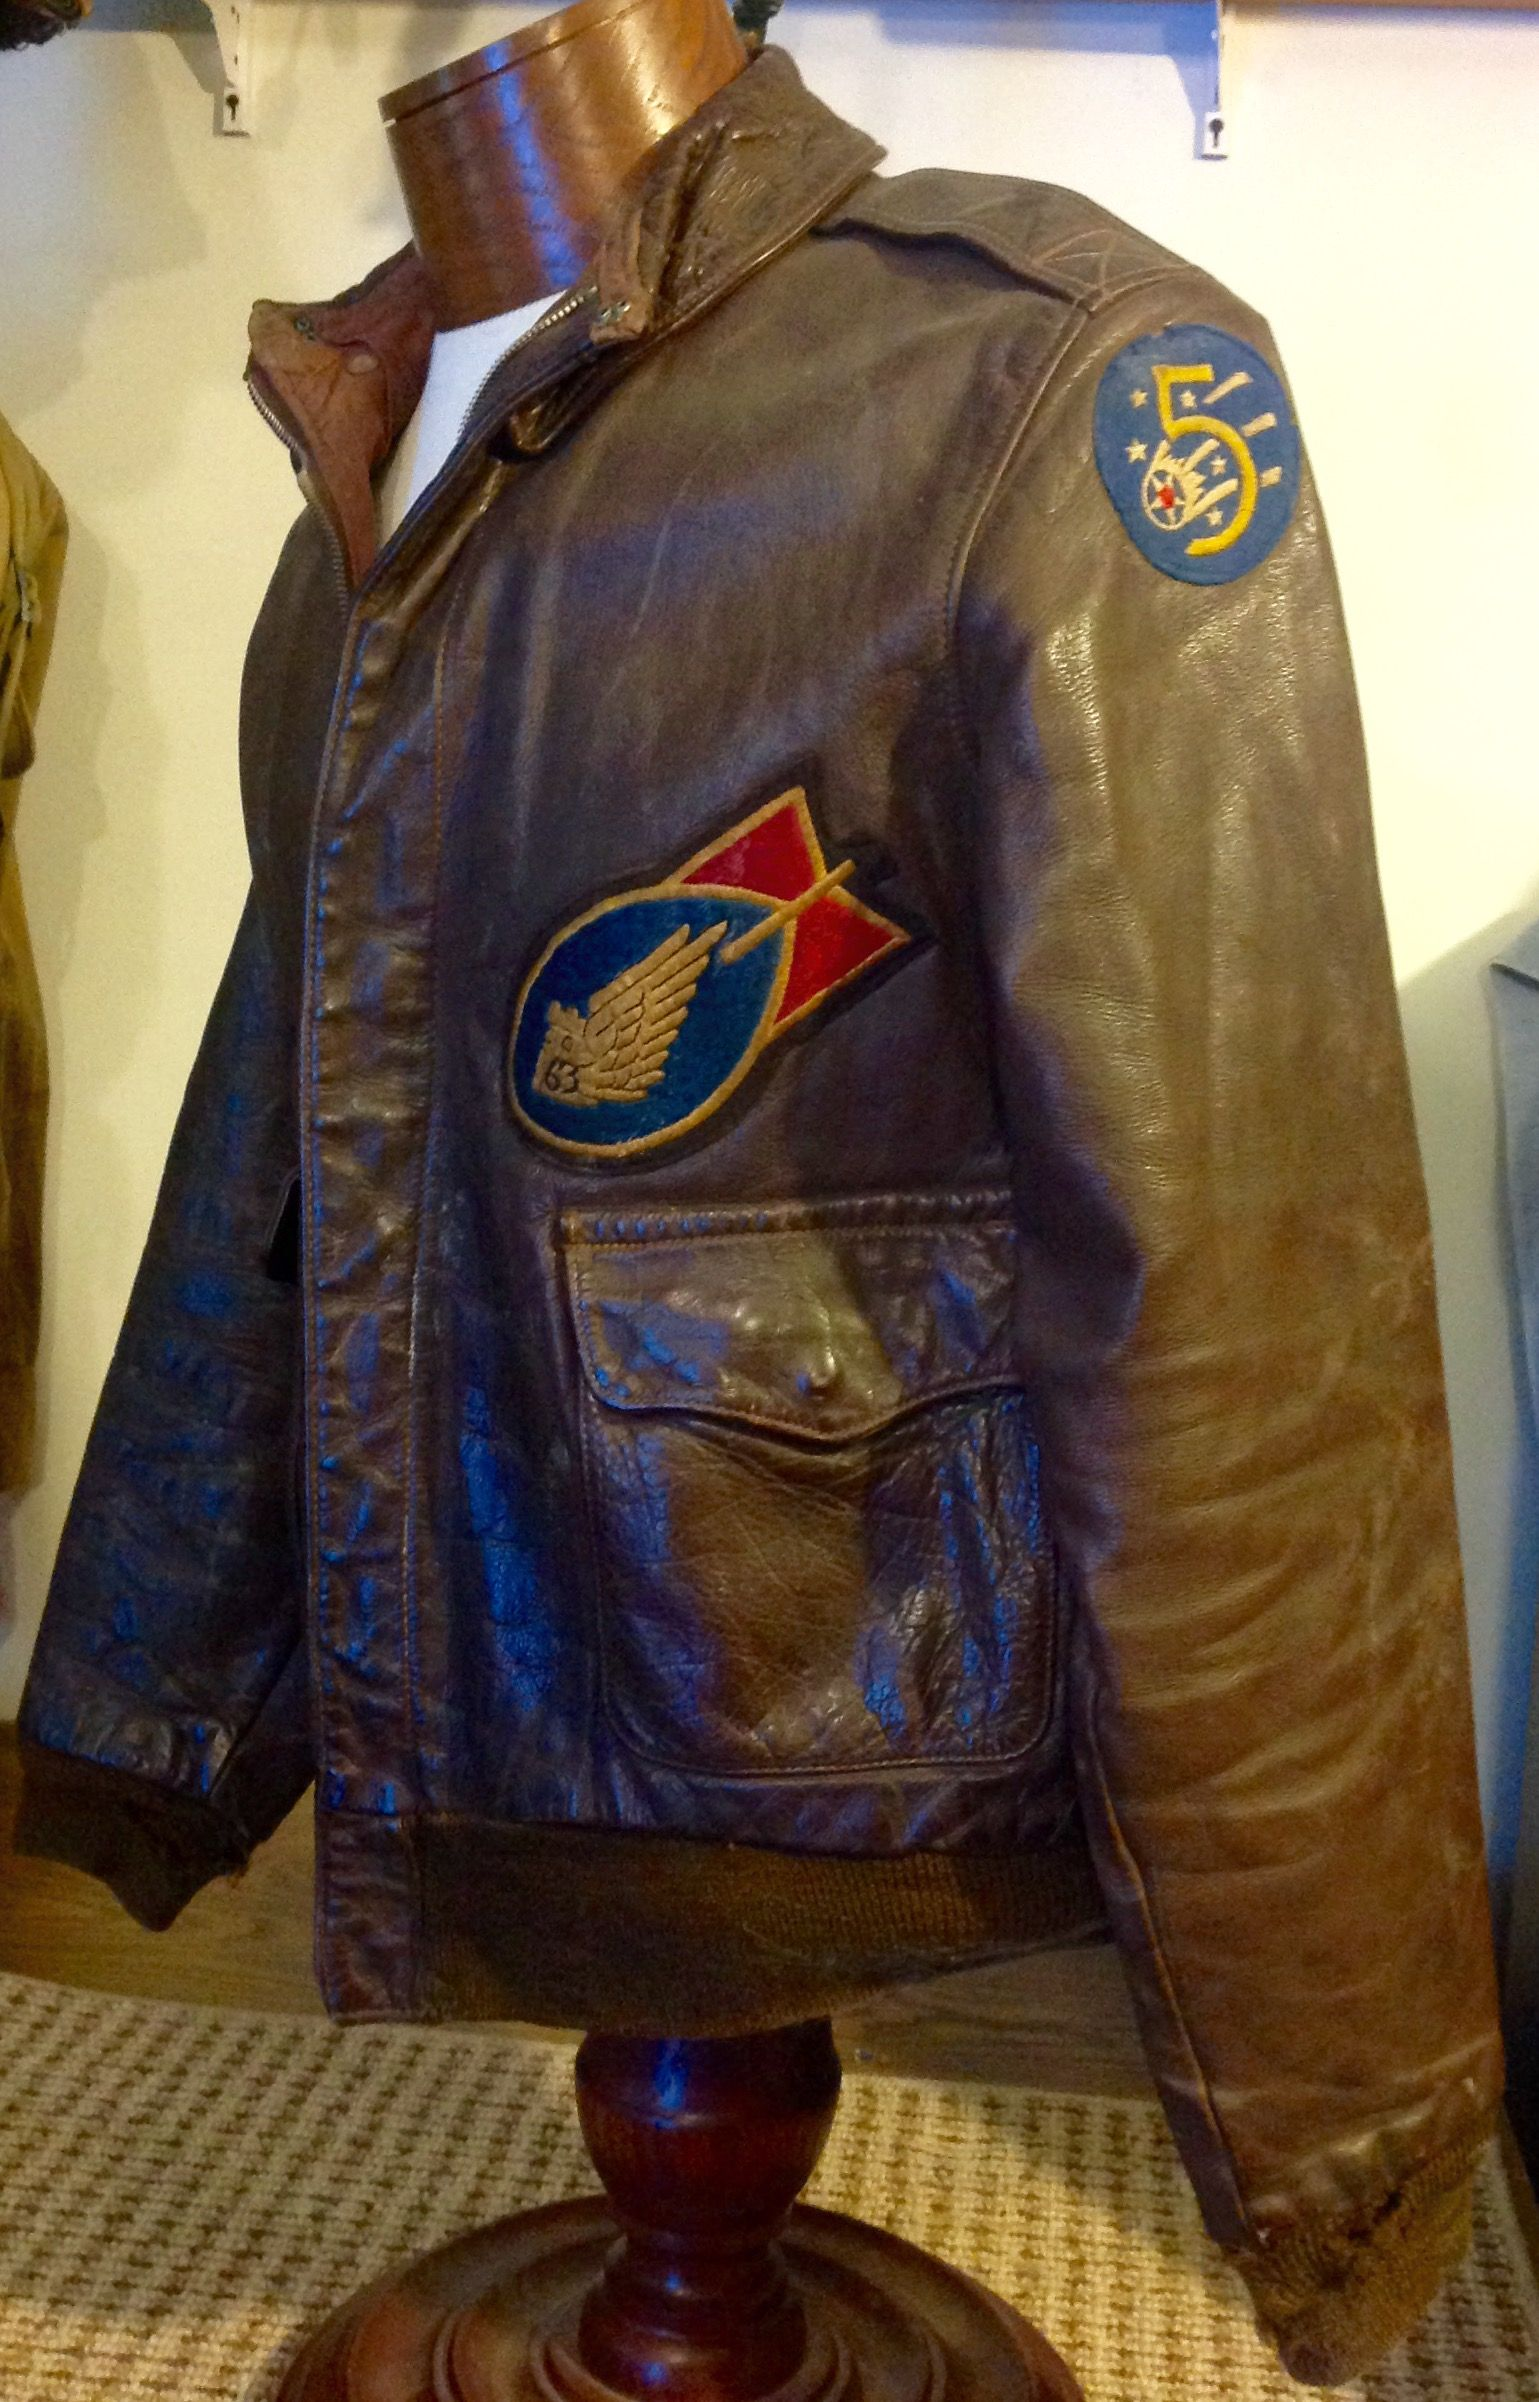 be5eee1f00a A2 flight jacket with 63rd bomb squadron and 5th army air force patches (C.  Huff